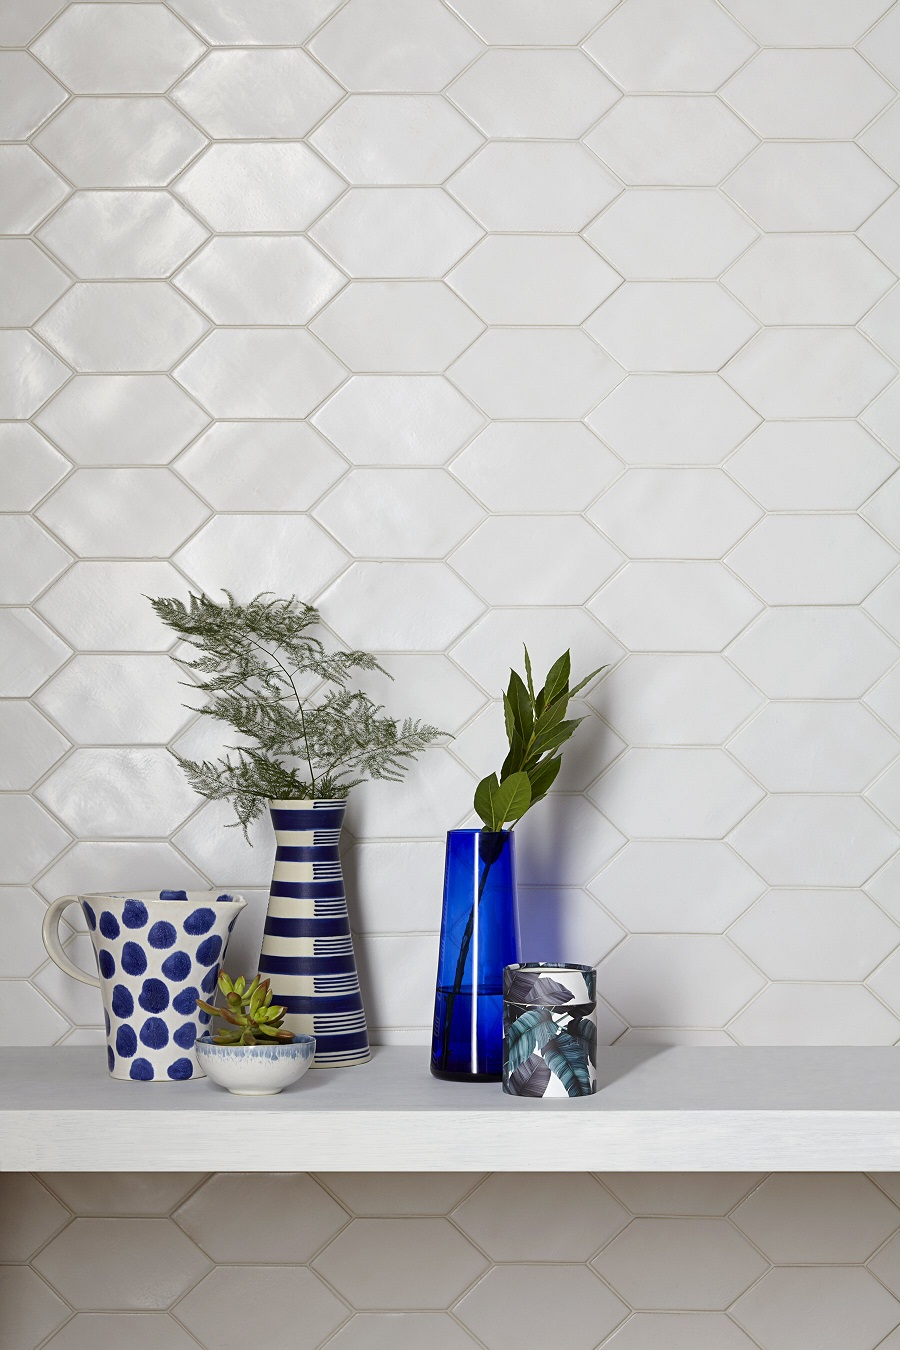 new wall tiles - ice, ice, baby